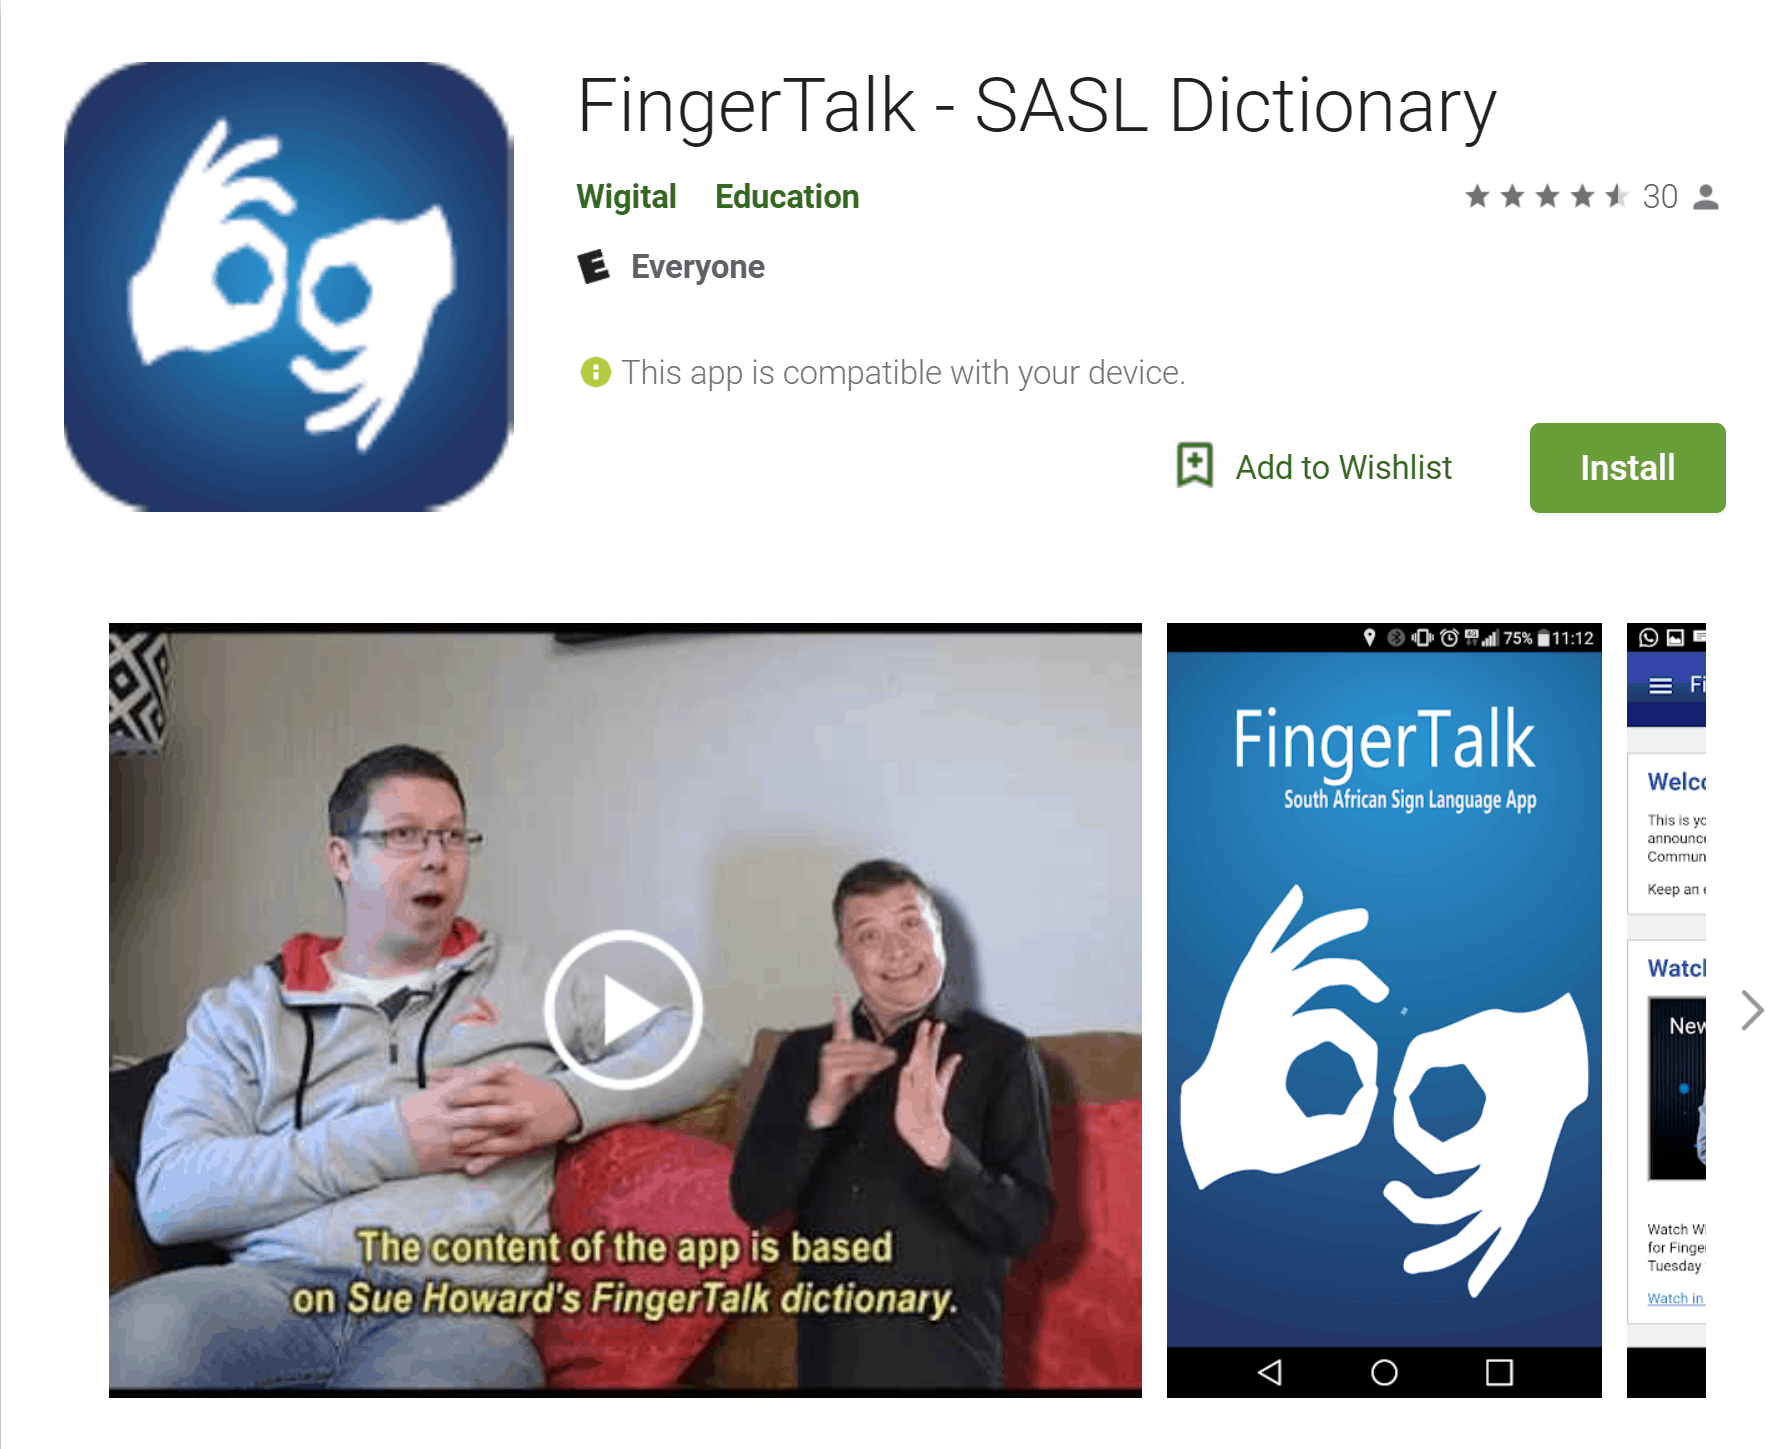 Screenshot that shows the FingerTalk SASL Dictionary in Google Play. The logo shows the white silhouette of two hands signing against a blue background. Below the name of the app and its logo is a video frozen to show two people seated on a couch, one talking and the other signing.